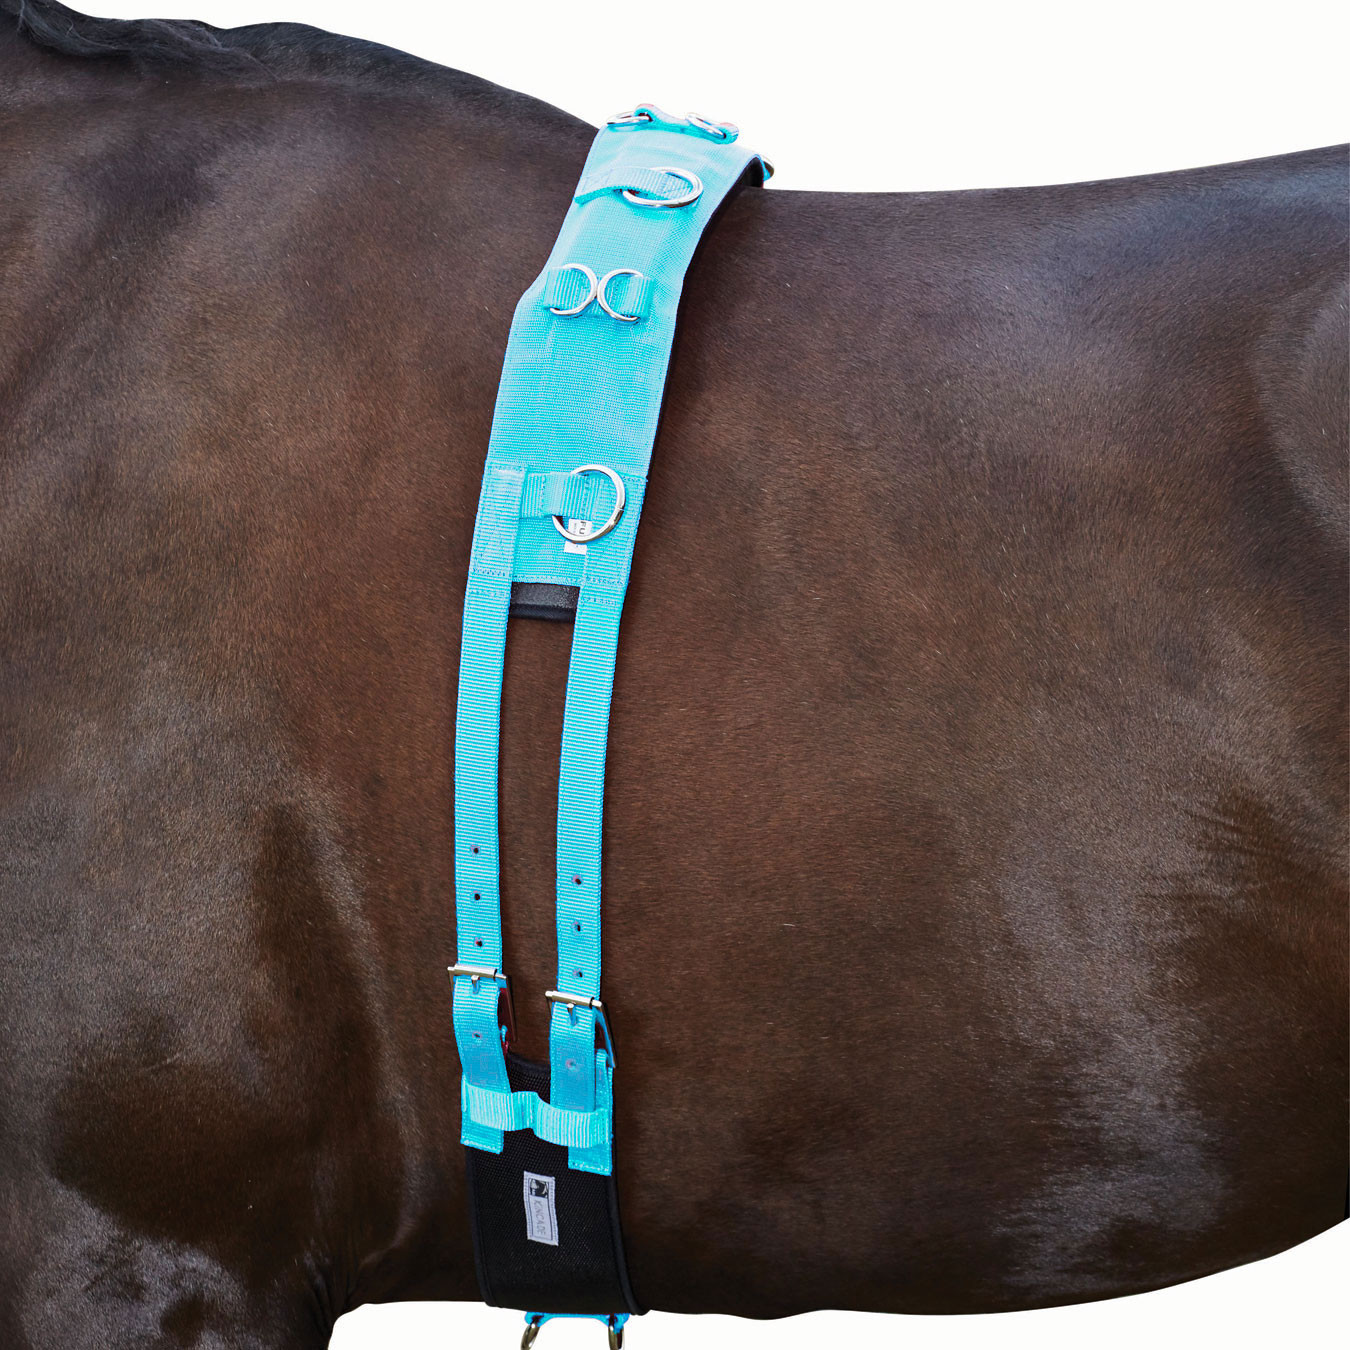 Kincade Brights Deluxe Equigrip Lunge Roller - Aqua